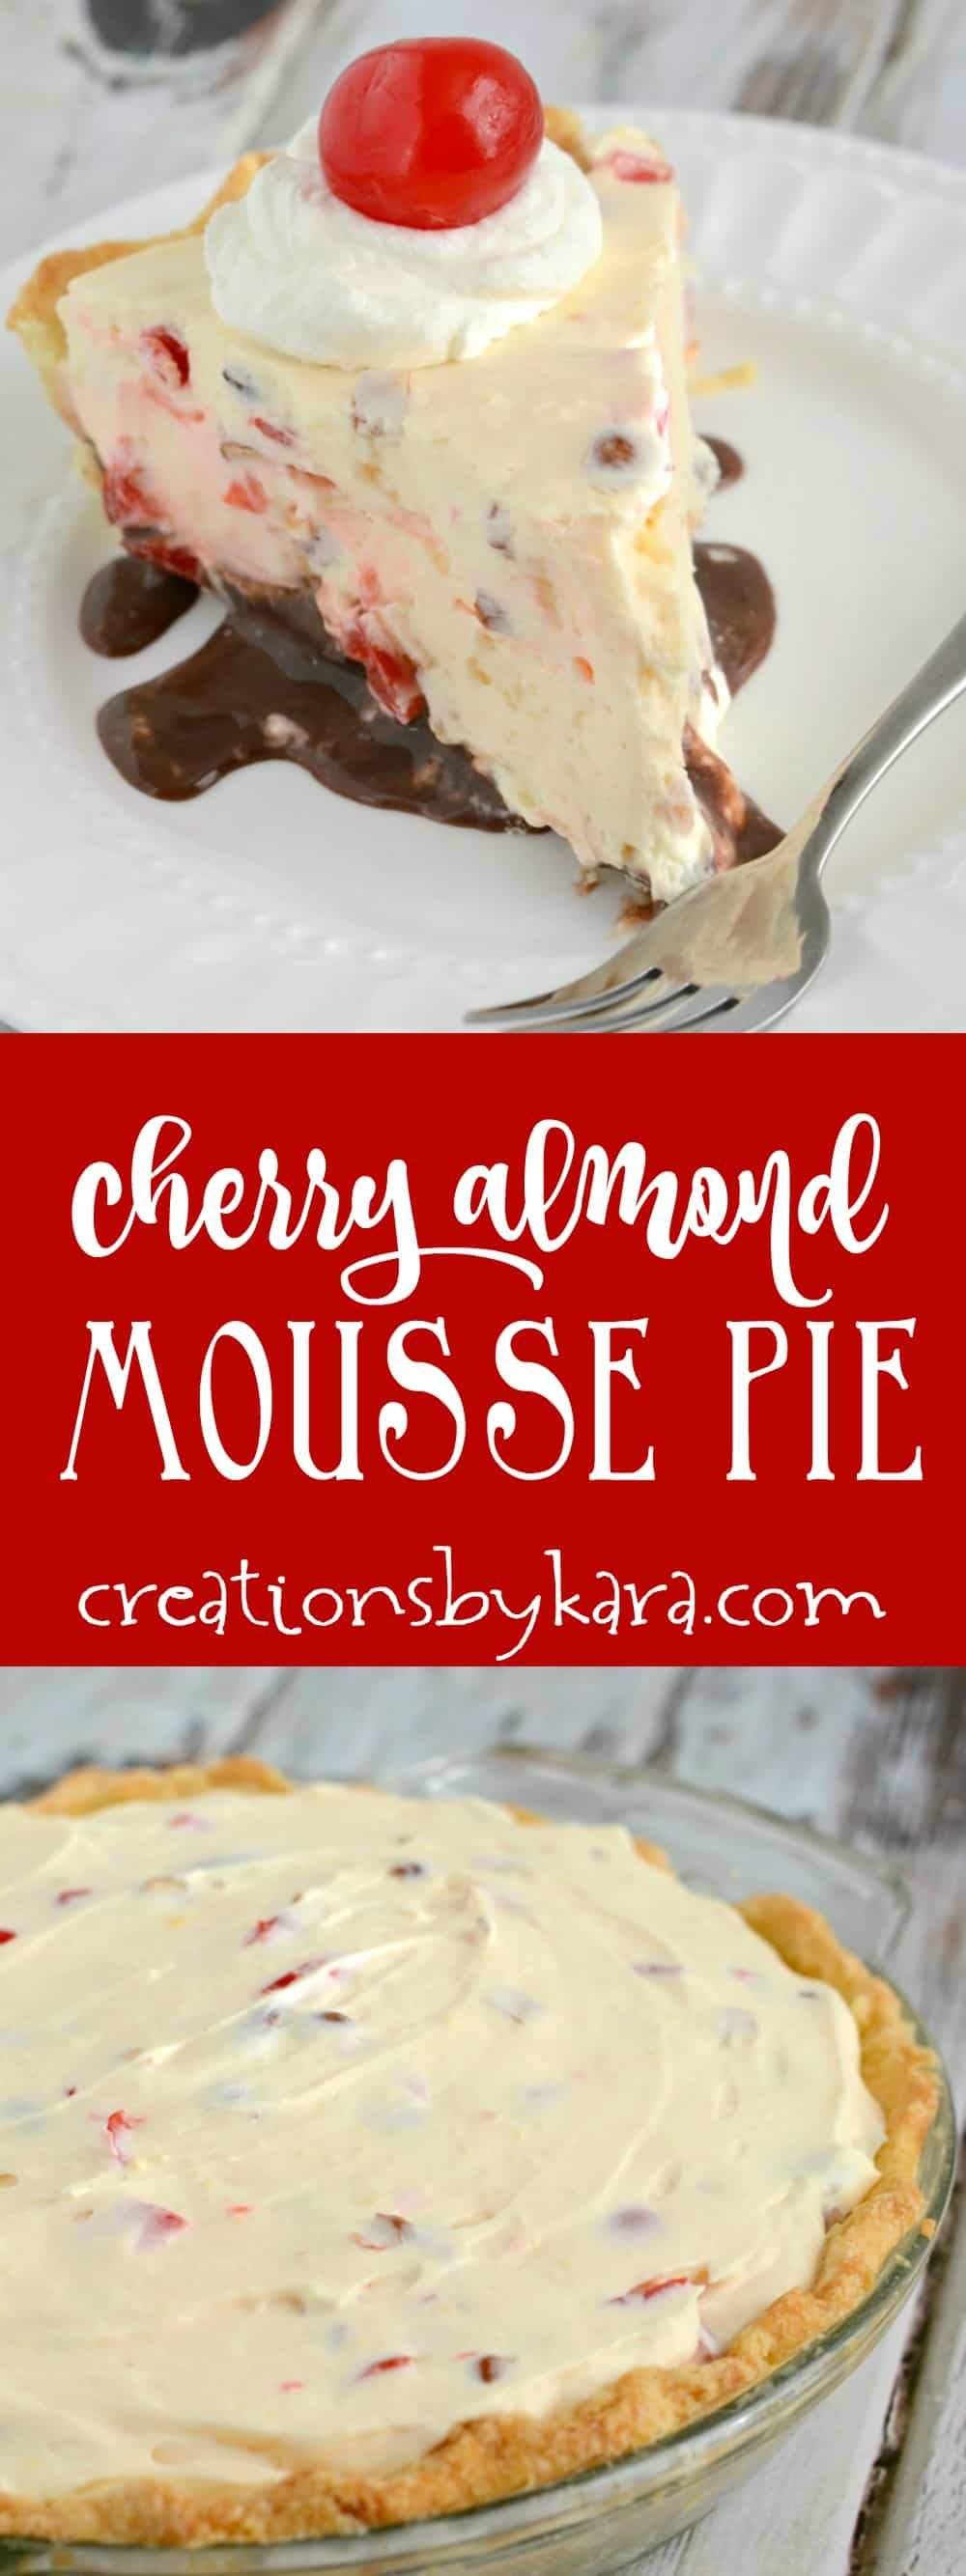 A layer of fudge, almonds, cherries, and cream cheese make this cherry almond mousse pie spectacular! It's no-bake, and so yummy.